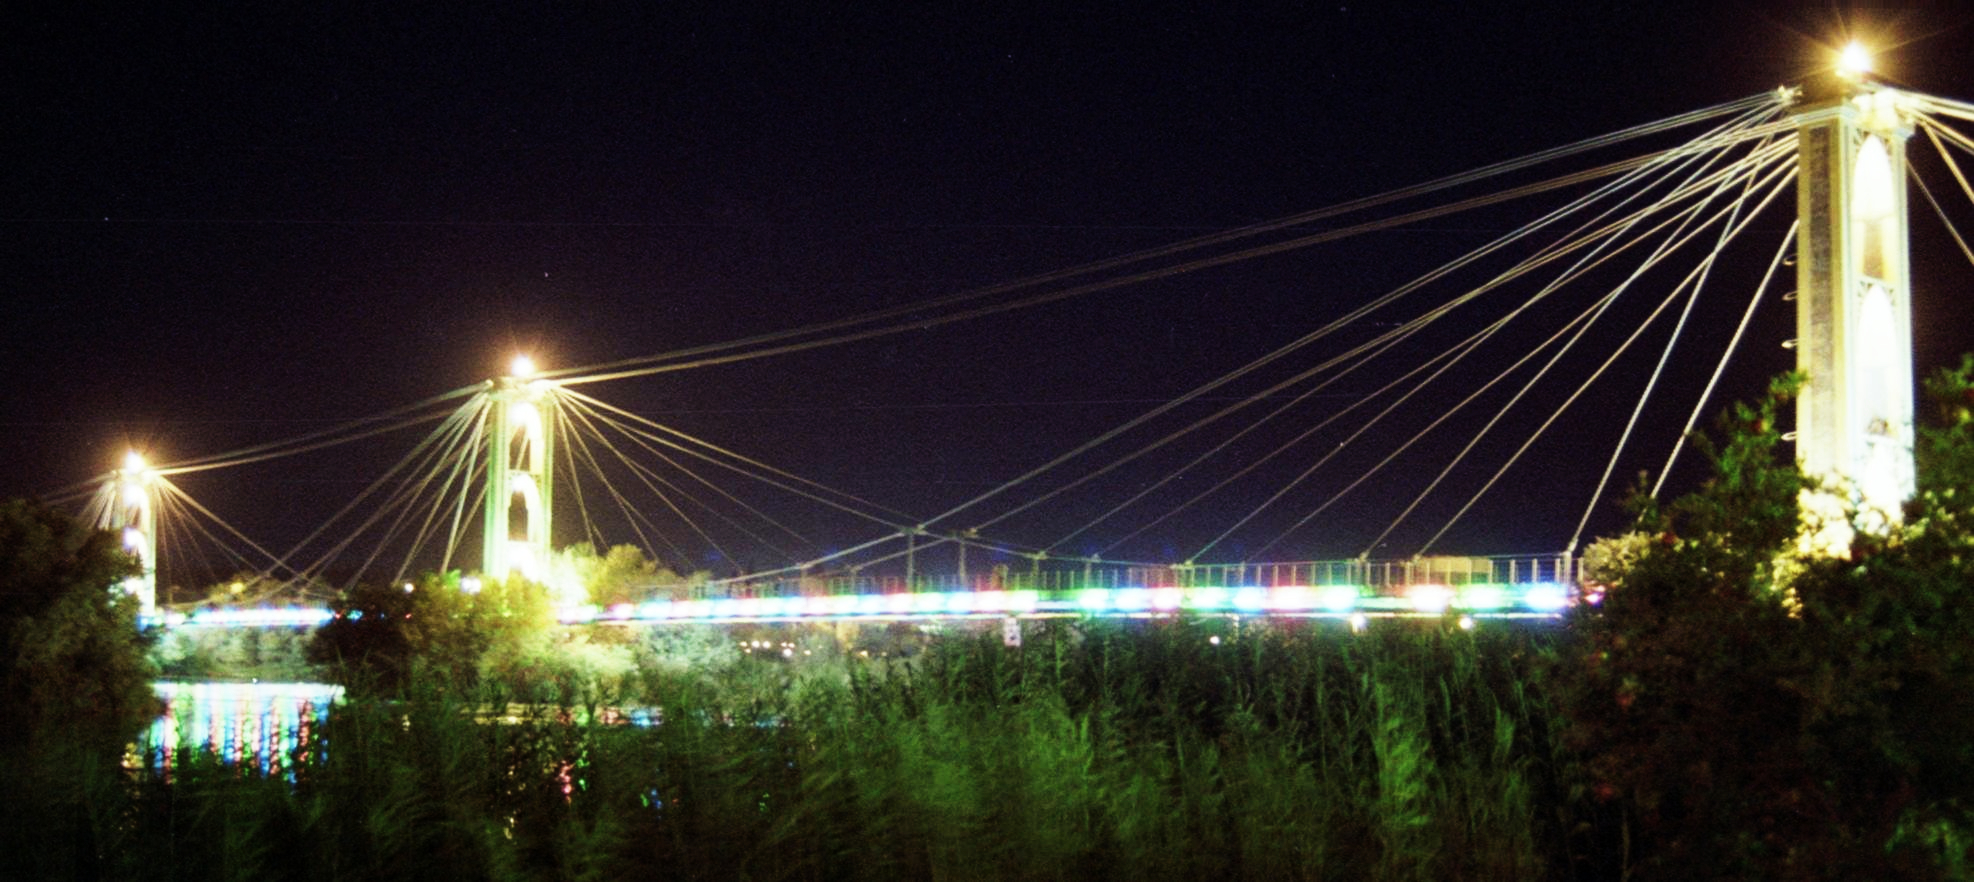 Deir ez-Zor suspension bridge at night in October 2010, by Fulvio Spada, used under CC BY-SA 2.0. / Contrast adjustment from original. The suspension bridge, which was built in the 1920s and spanned the Euphrates River, was destroyed in May 2013.